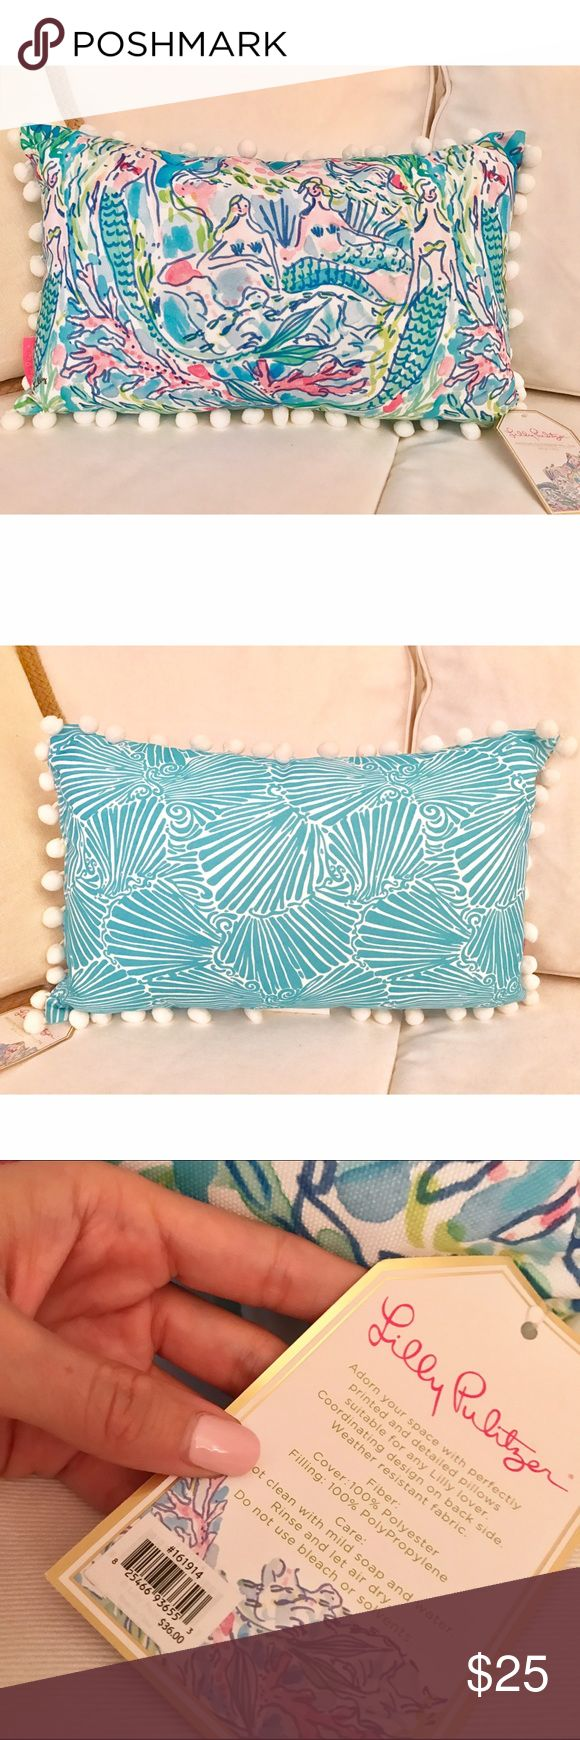 """NWT Lilly Pulitzer Mermaid Pillow Indoor Or Outdoor Use Pillow in Mermaid Print. Coordinating Blue & White Shell Print On Back. Measures 20"""" W x 12"""" H. Lilly Pulitzer Accessories"""